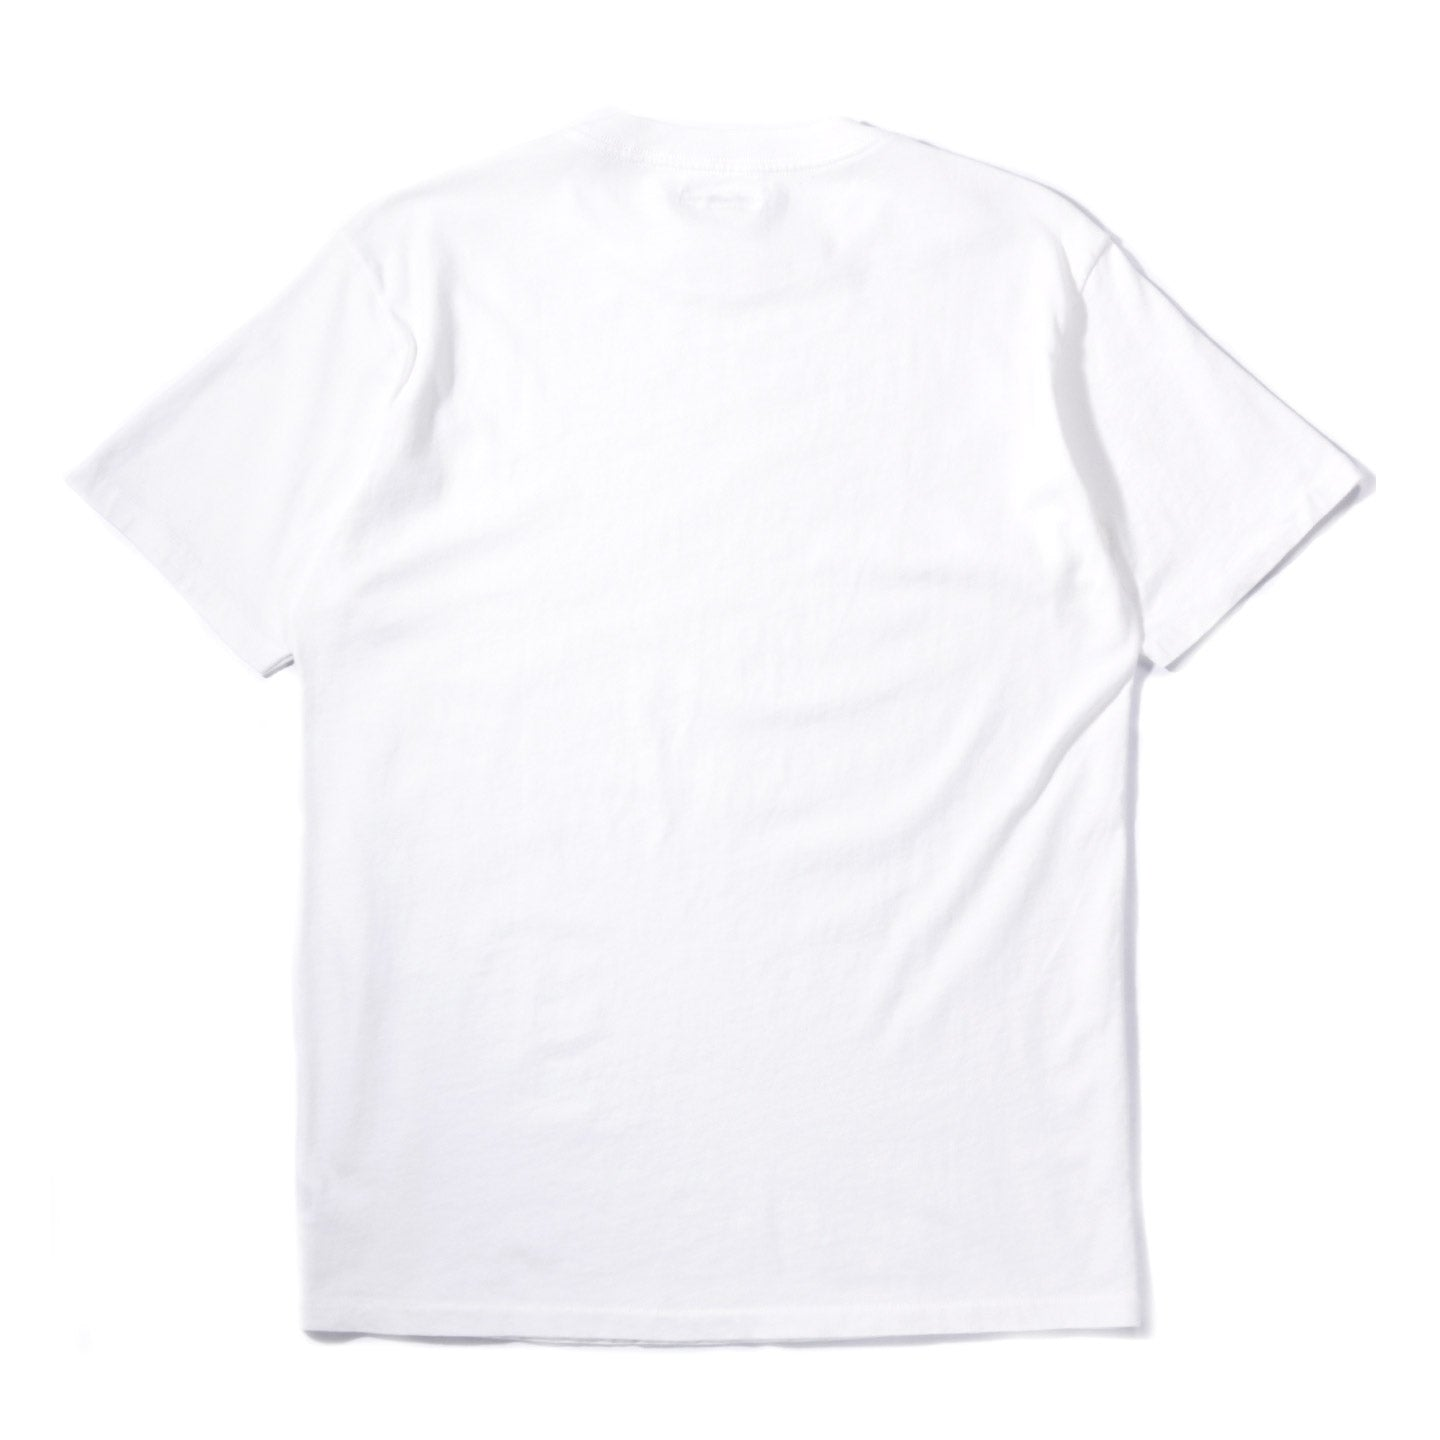 LADY WHITE CO. LITE JERSEY T-SHIRT WHITE